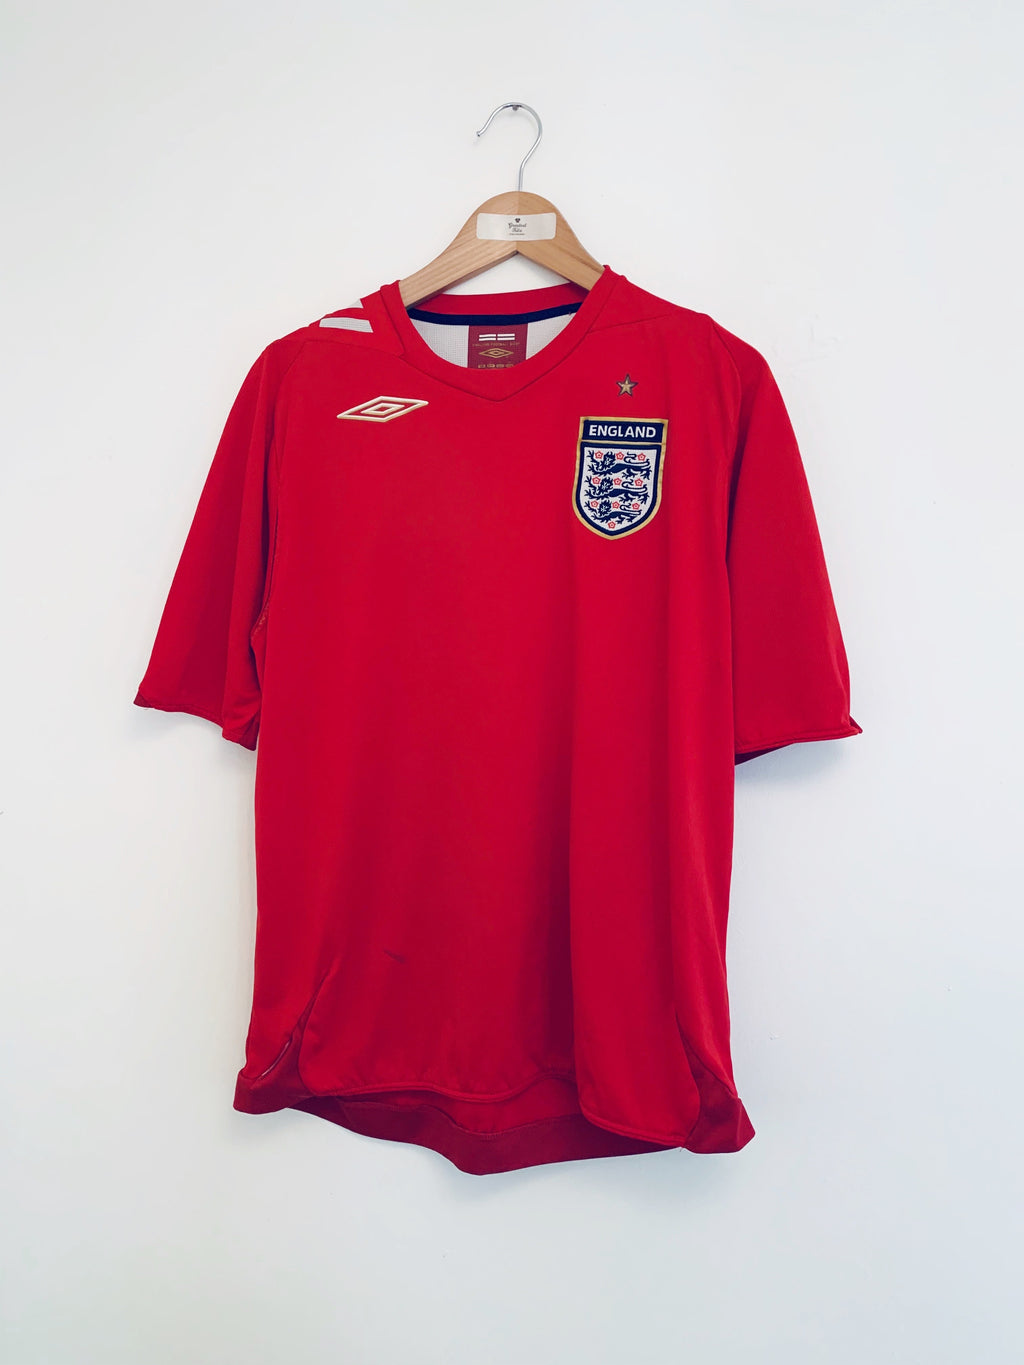 2006/08 England Away Shirt (L) 6.5/10